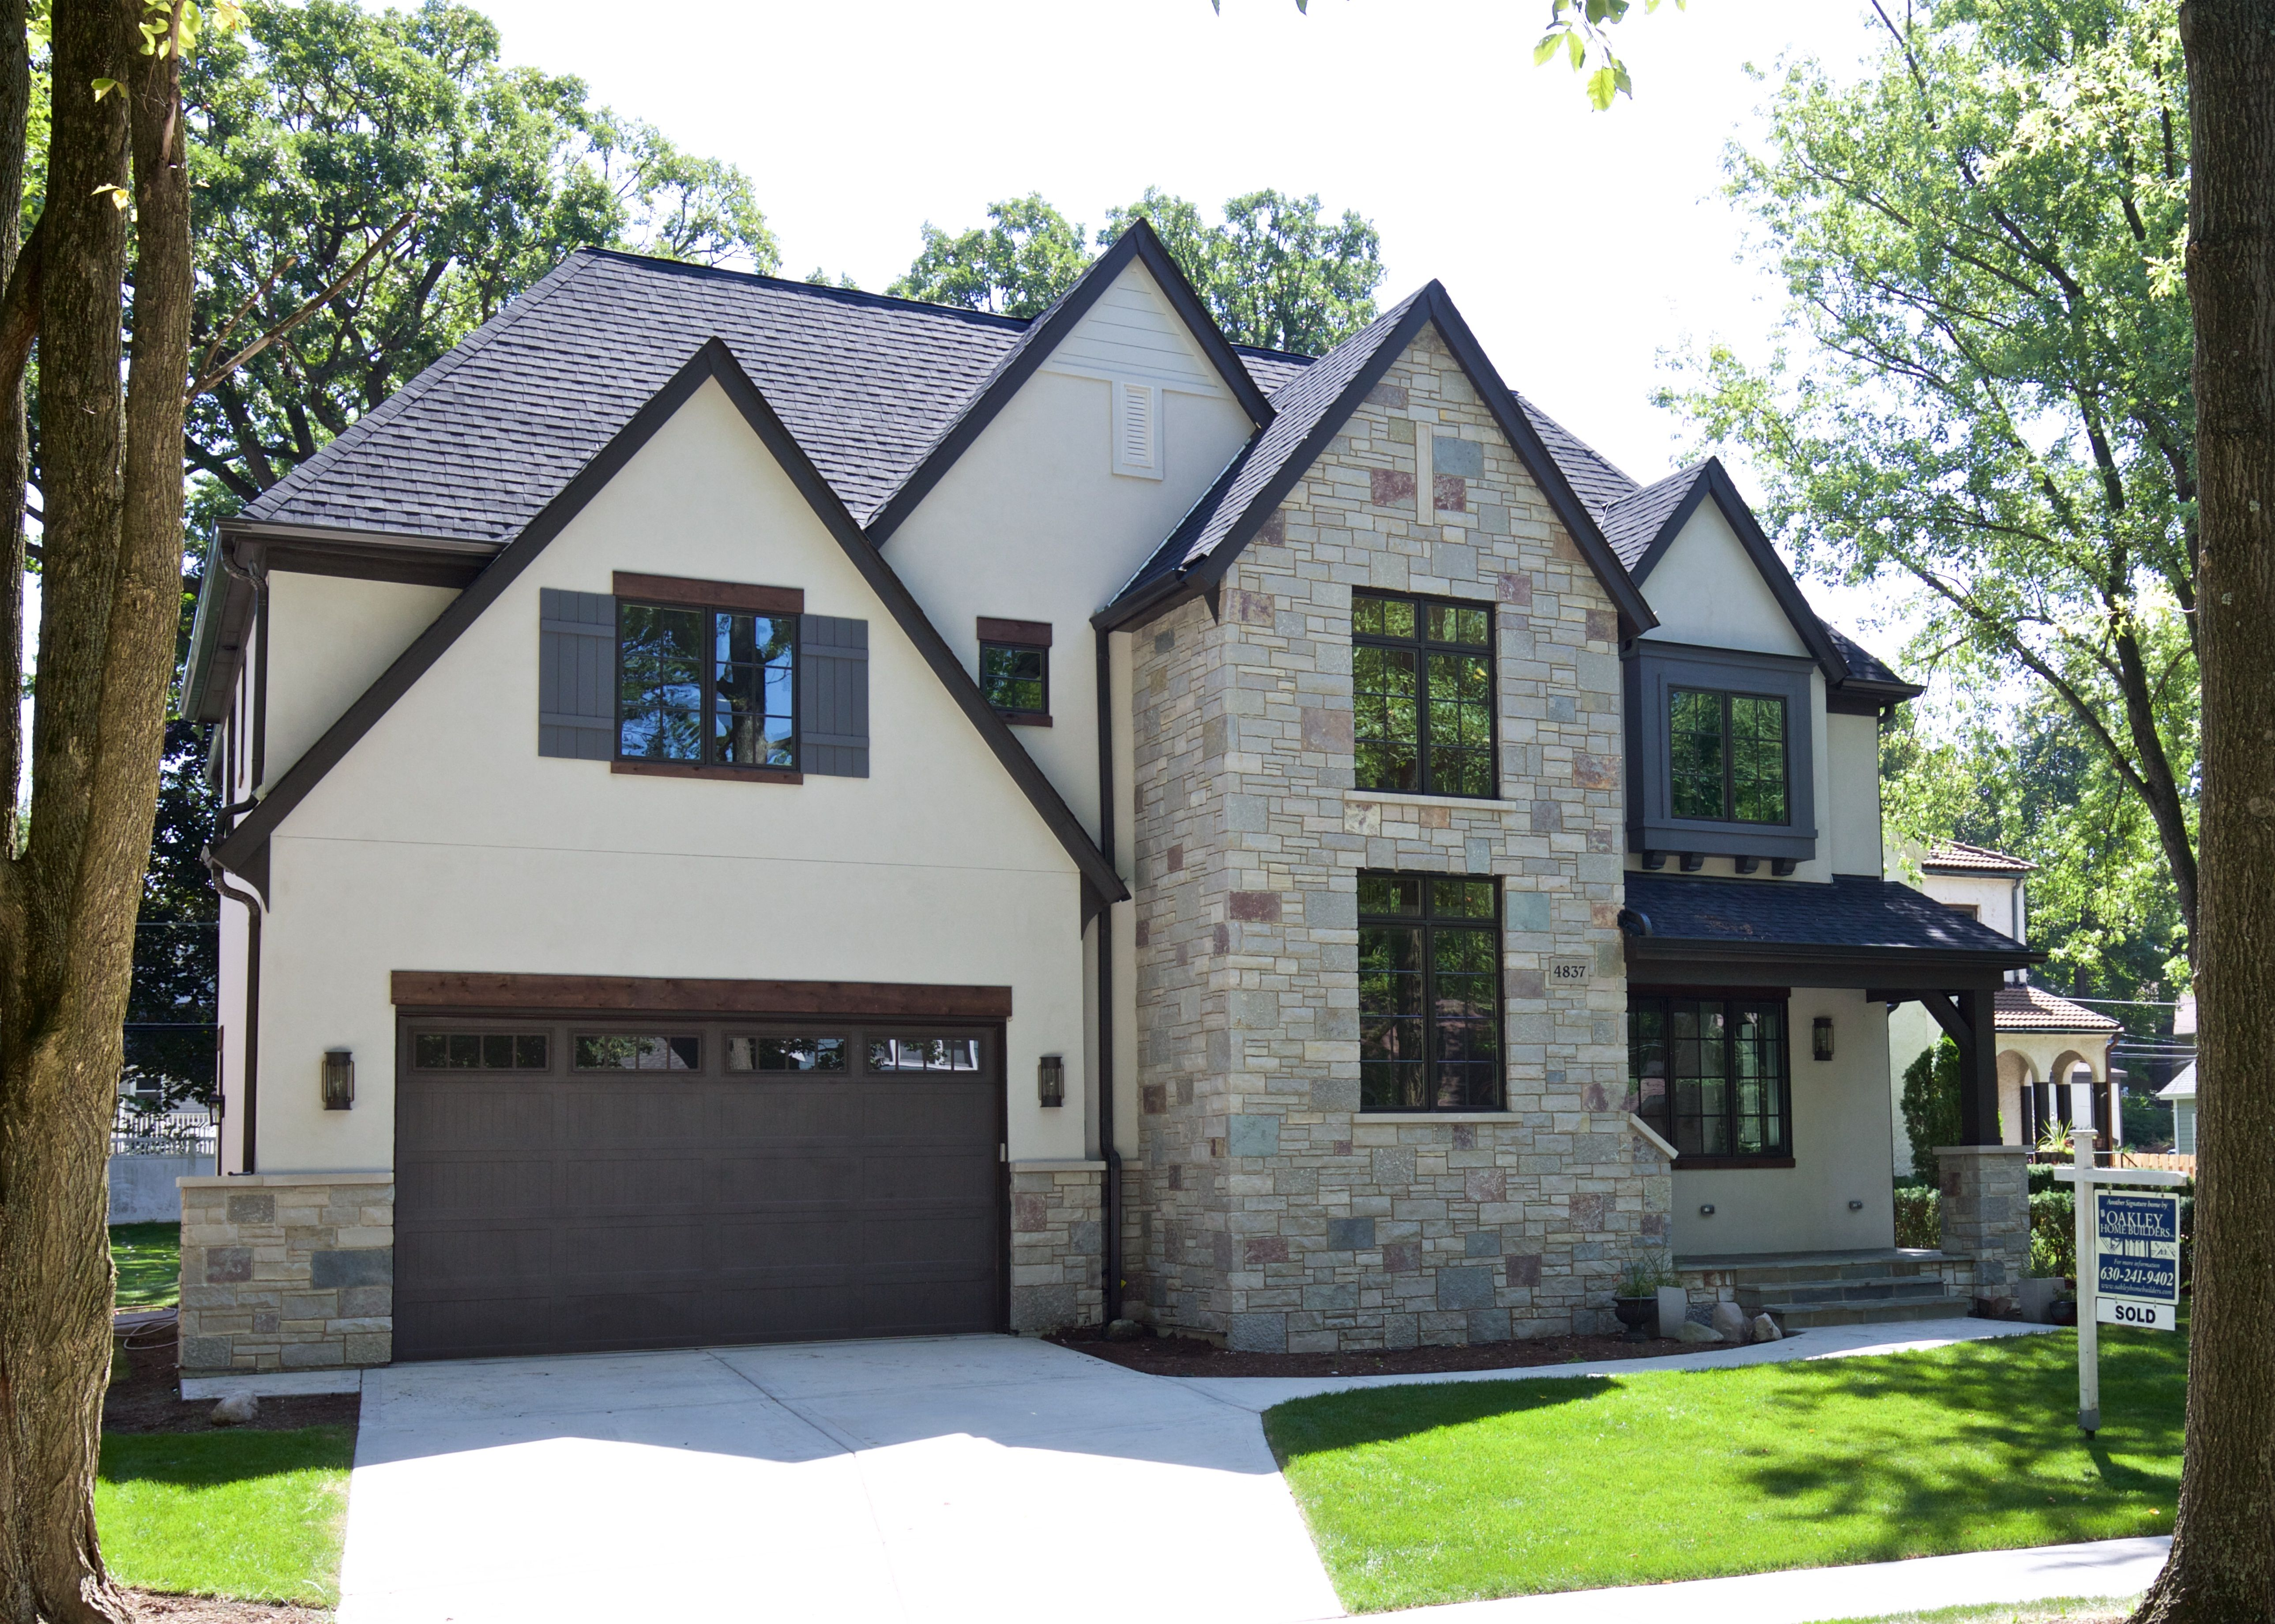 Exterior house color ideas stucco - House Stone And Stucco Home Exterior